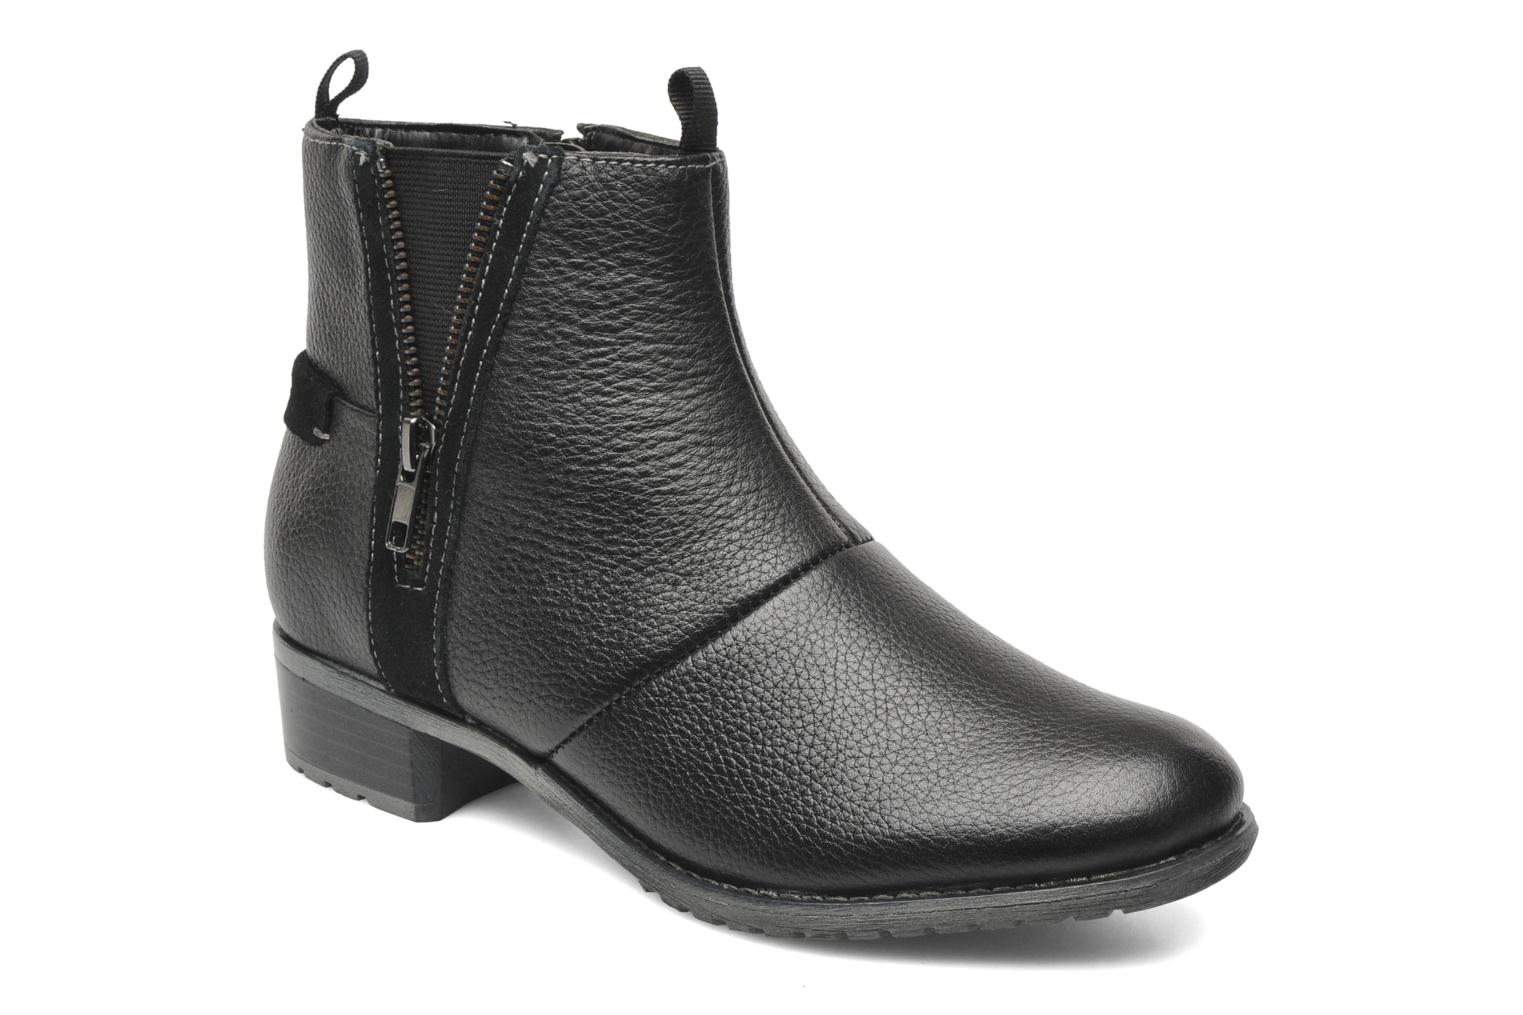 Boots en enkellaarsjes chamber ankle_bt by Hush Puppies